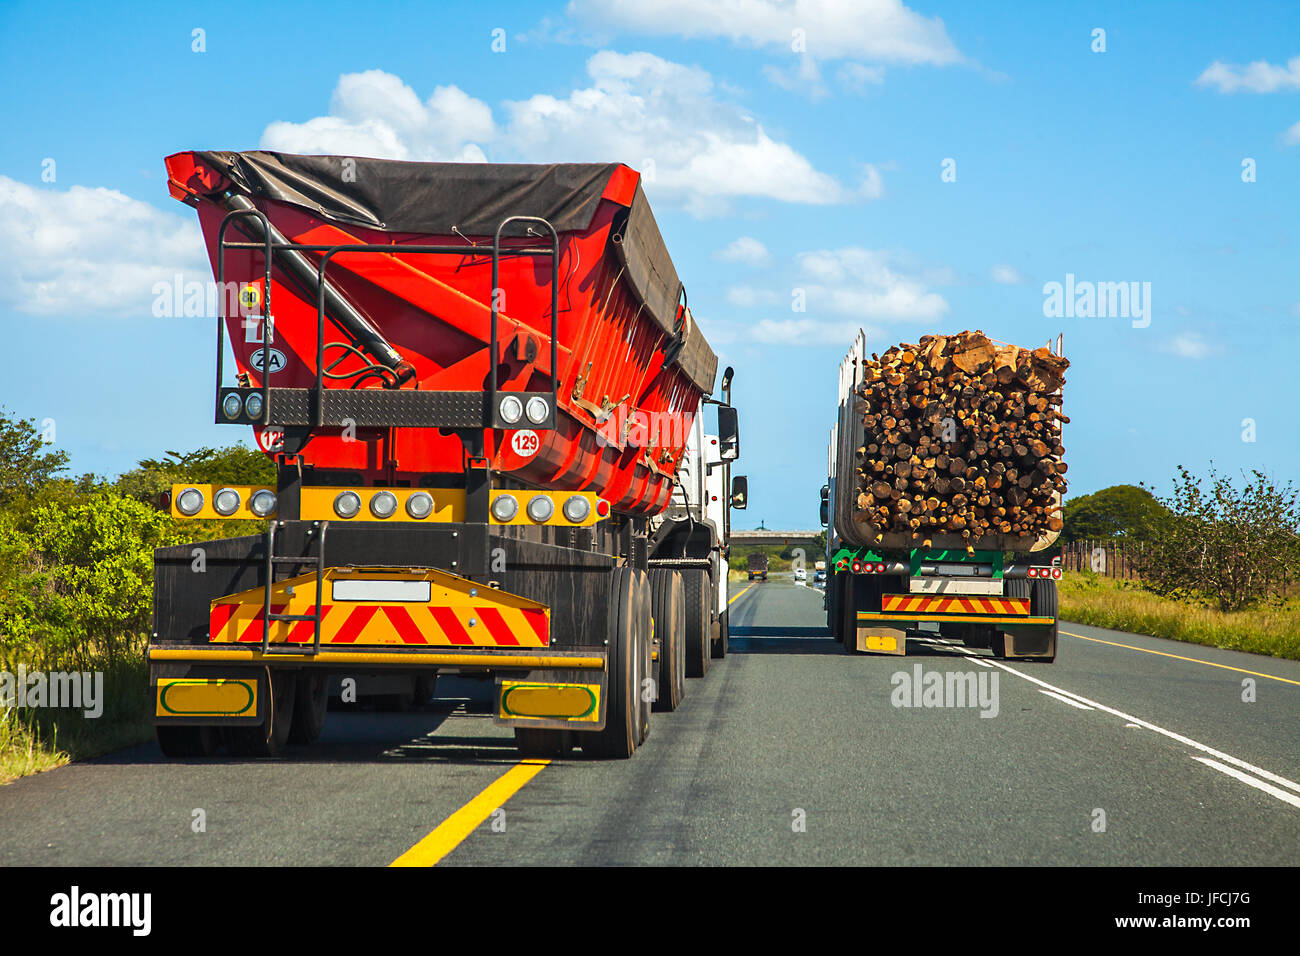 Truck races in South Africa - Stock Image